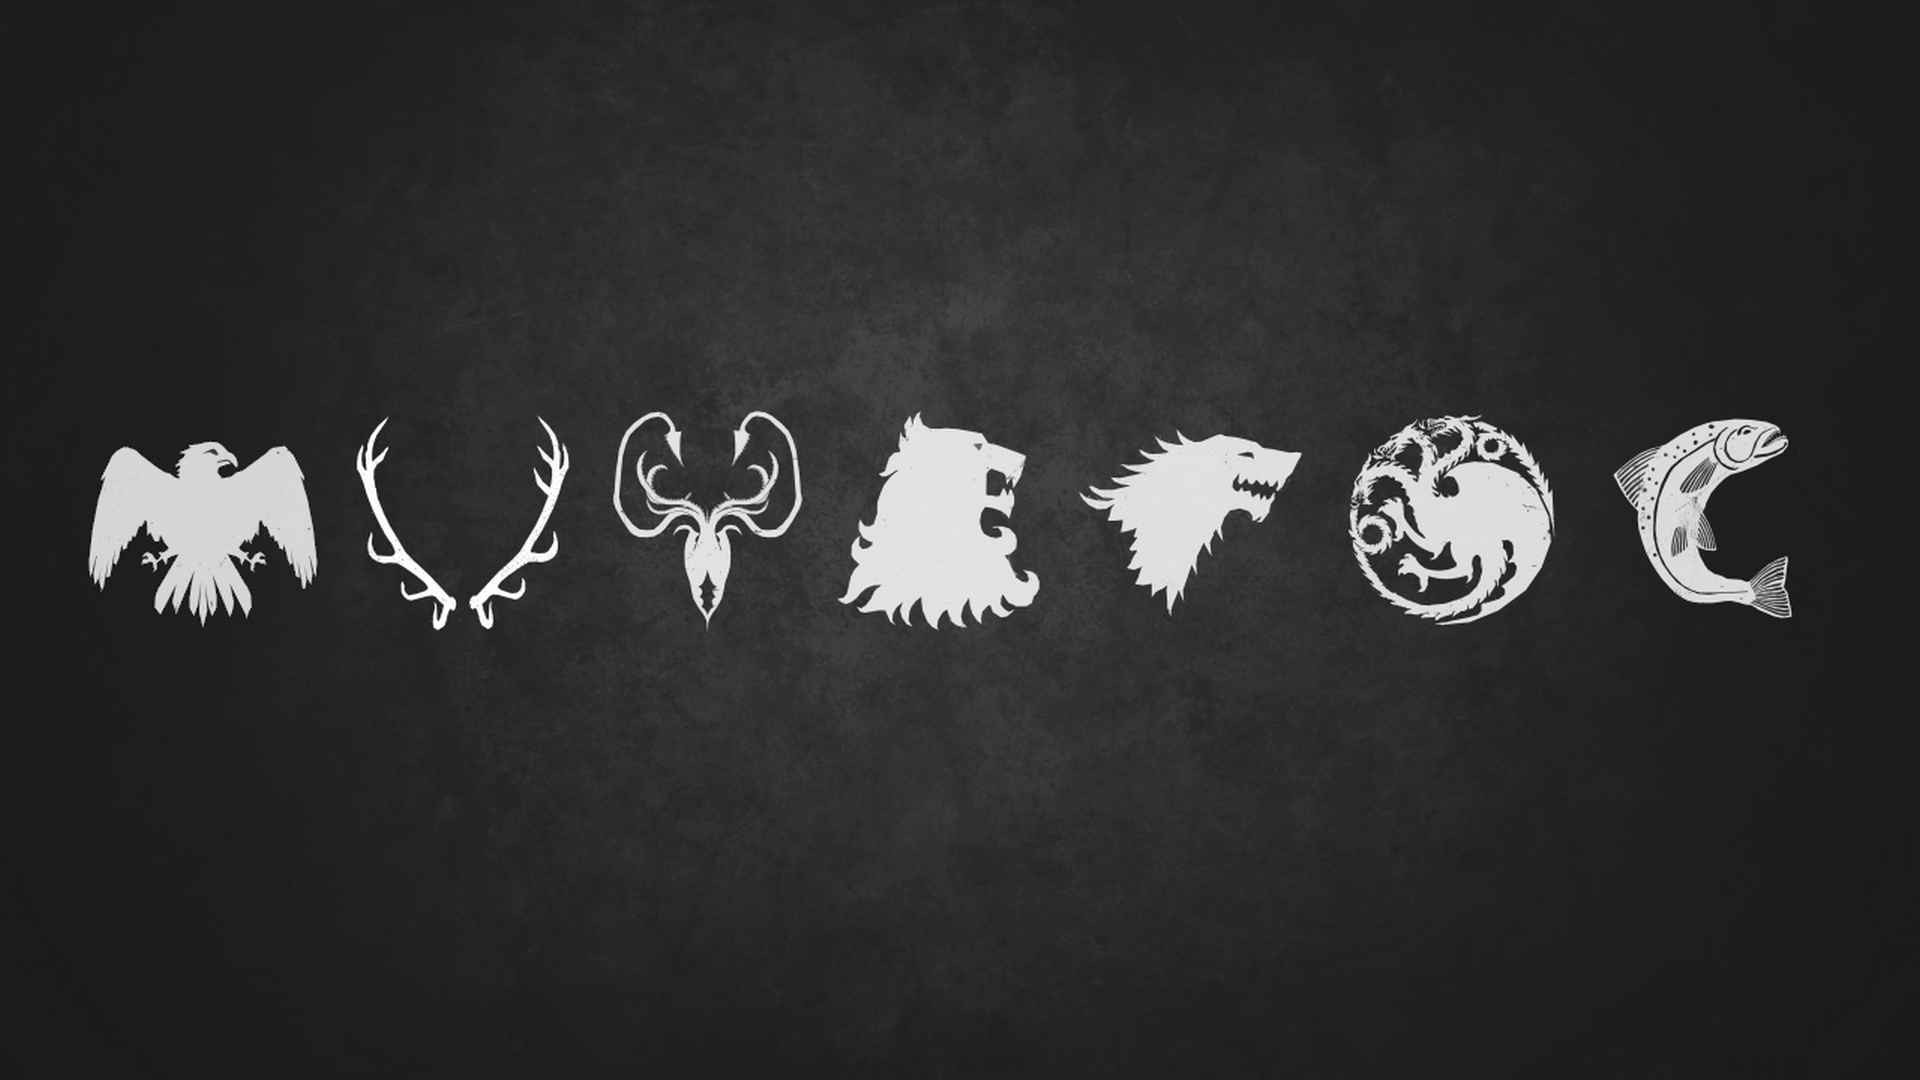 Hd Wallpapers Backgrounds For Game Of Thrones Free For: 50+ Game Of Thrones Wallpapers ·① Download Free Awesome